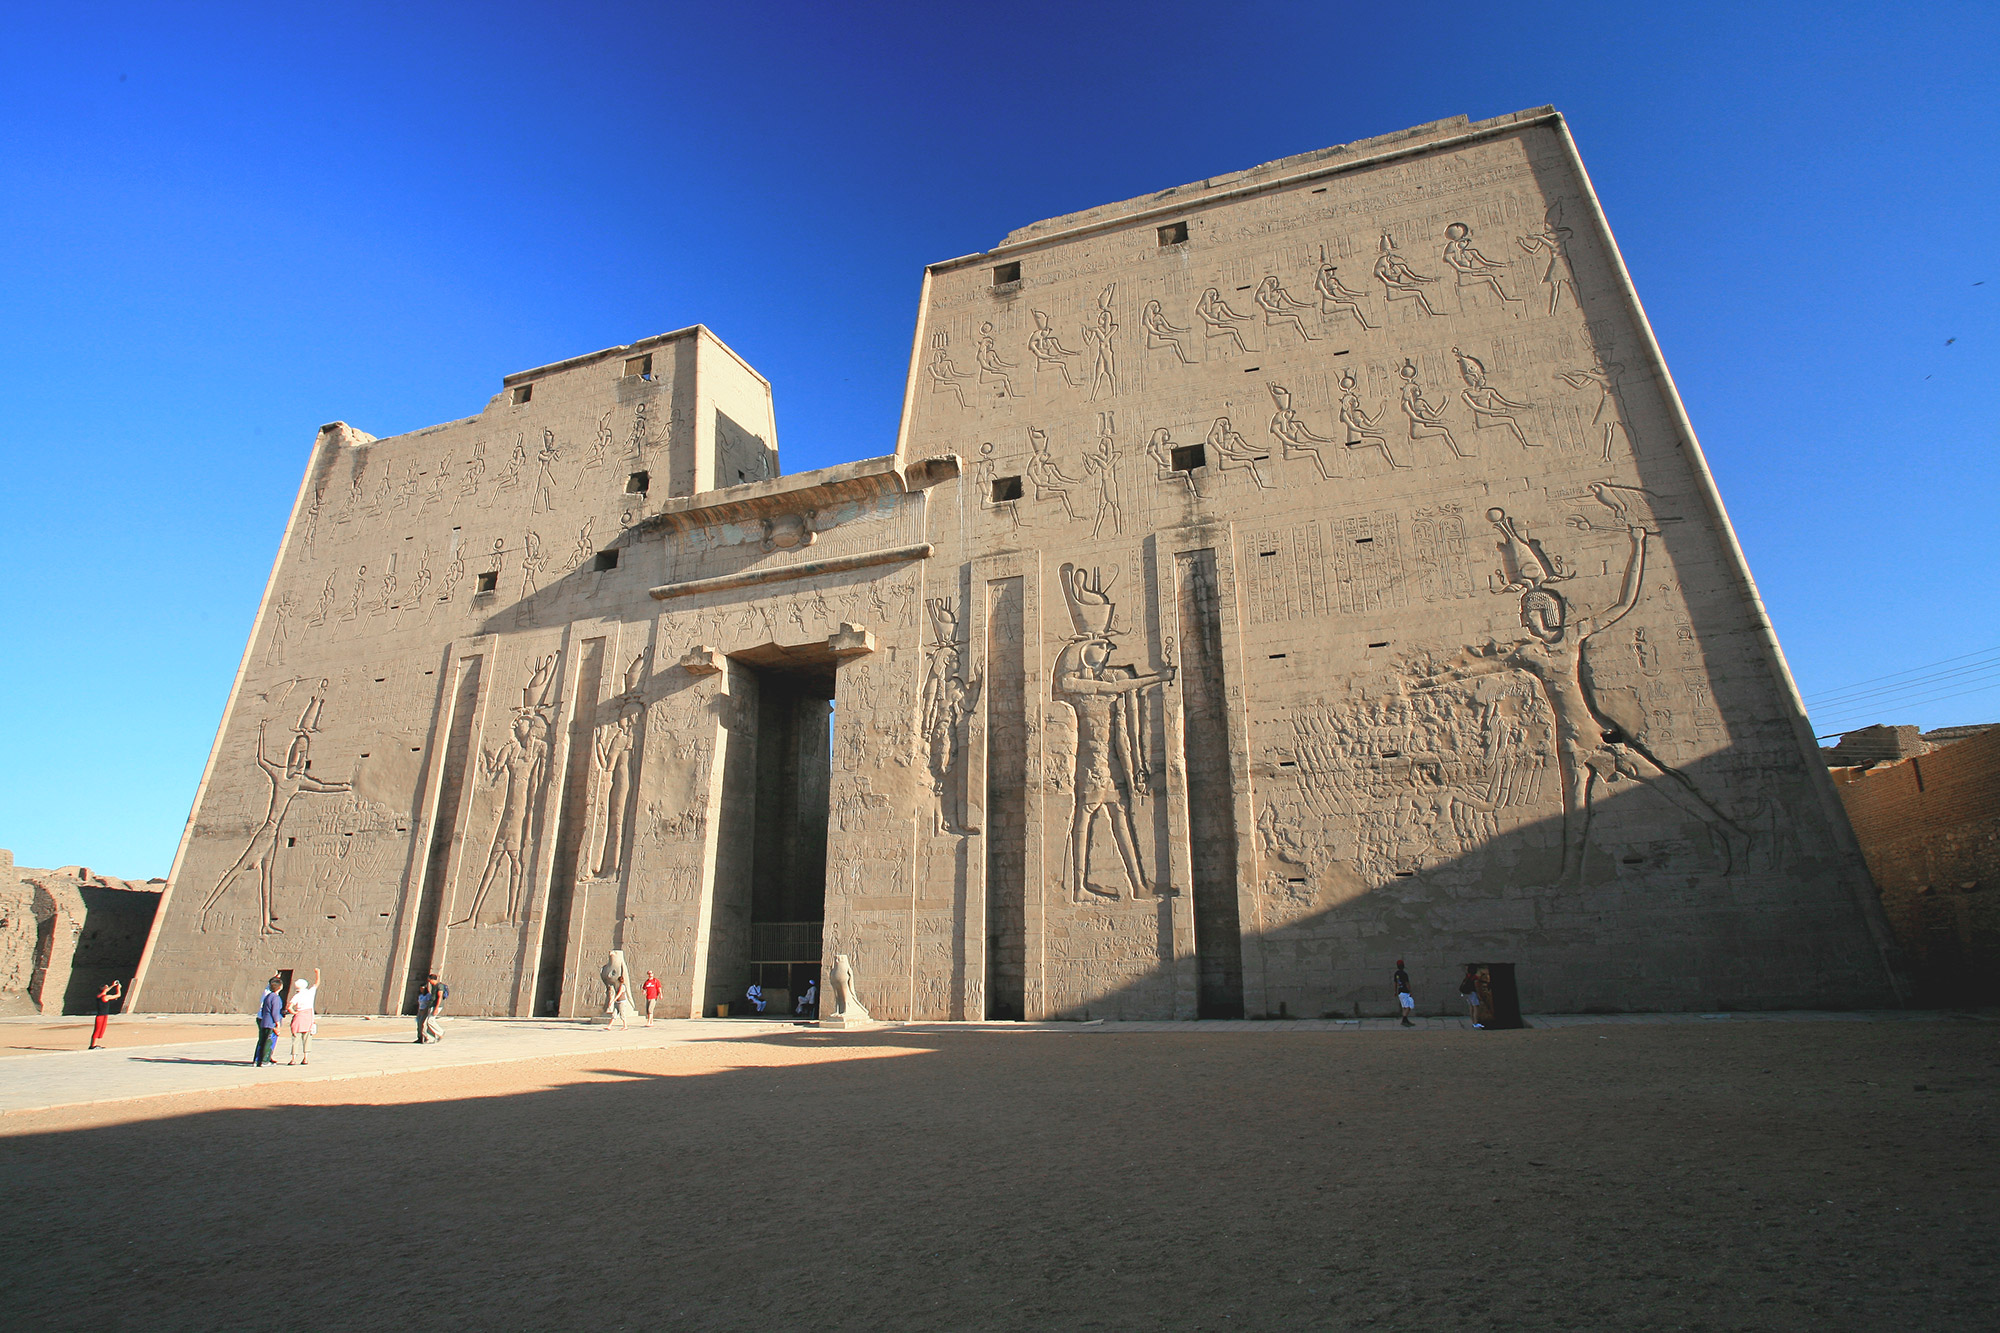 Front view of the facade of the Temple of Edfu in Egypt